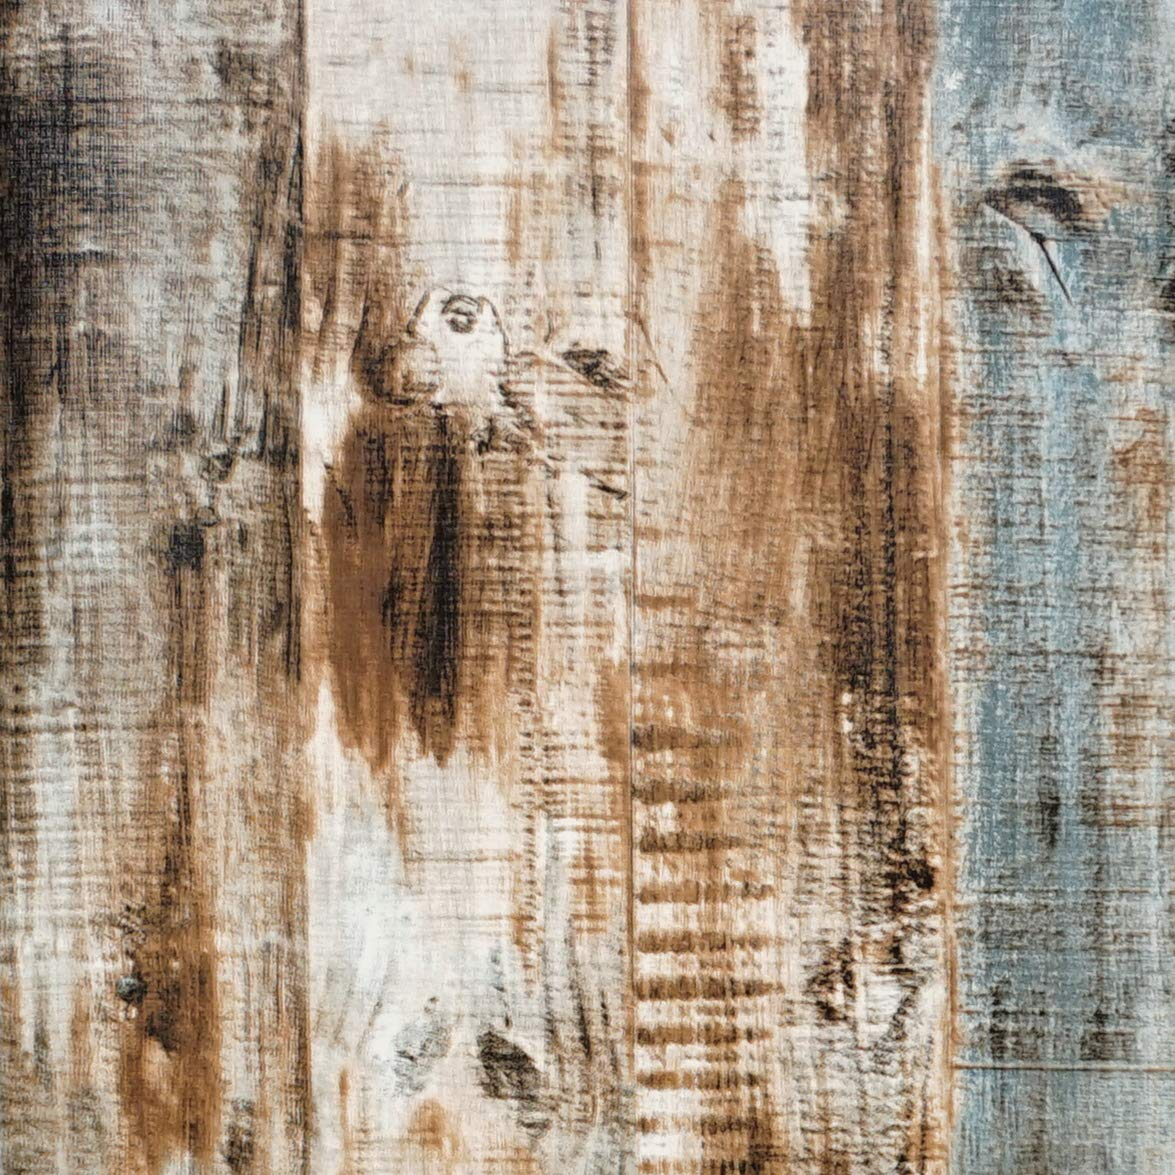 197''x17.8'' Wood Peel and Stick Wallpaper Self-Adhesive Removable Wall Covering Decorative Vintage Wood Panel Faux Distressed Wood Plank Wooden Grain Film Vinyl Decal Roll by Heroad